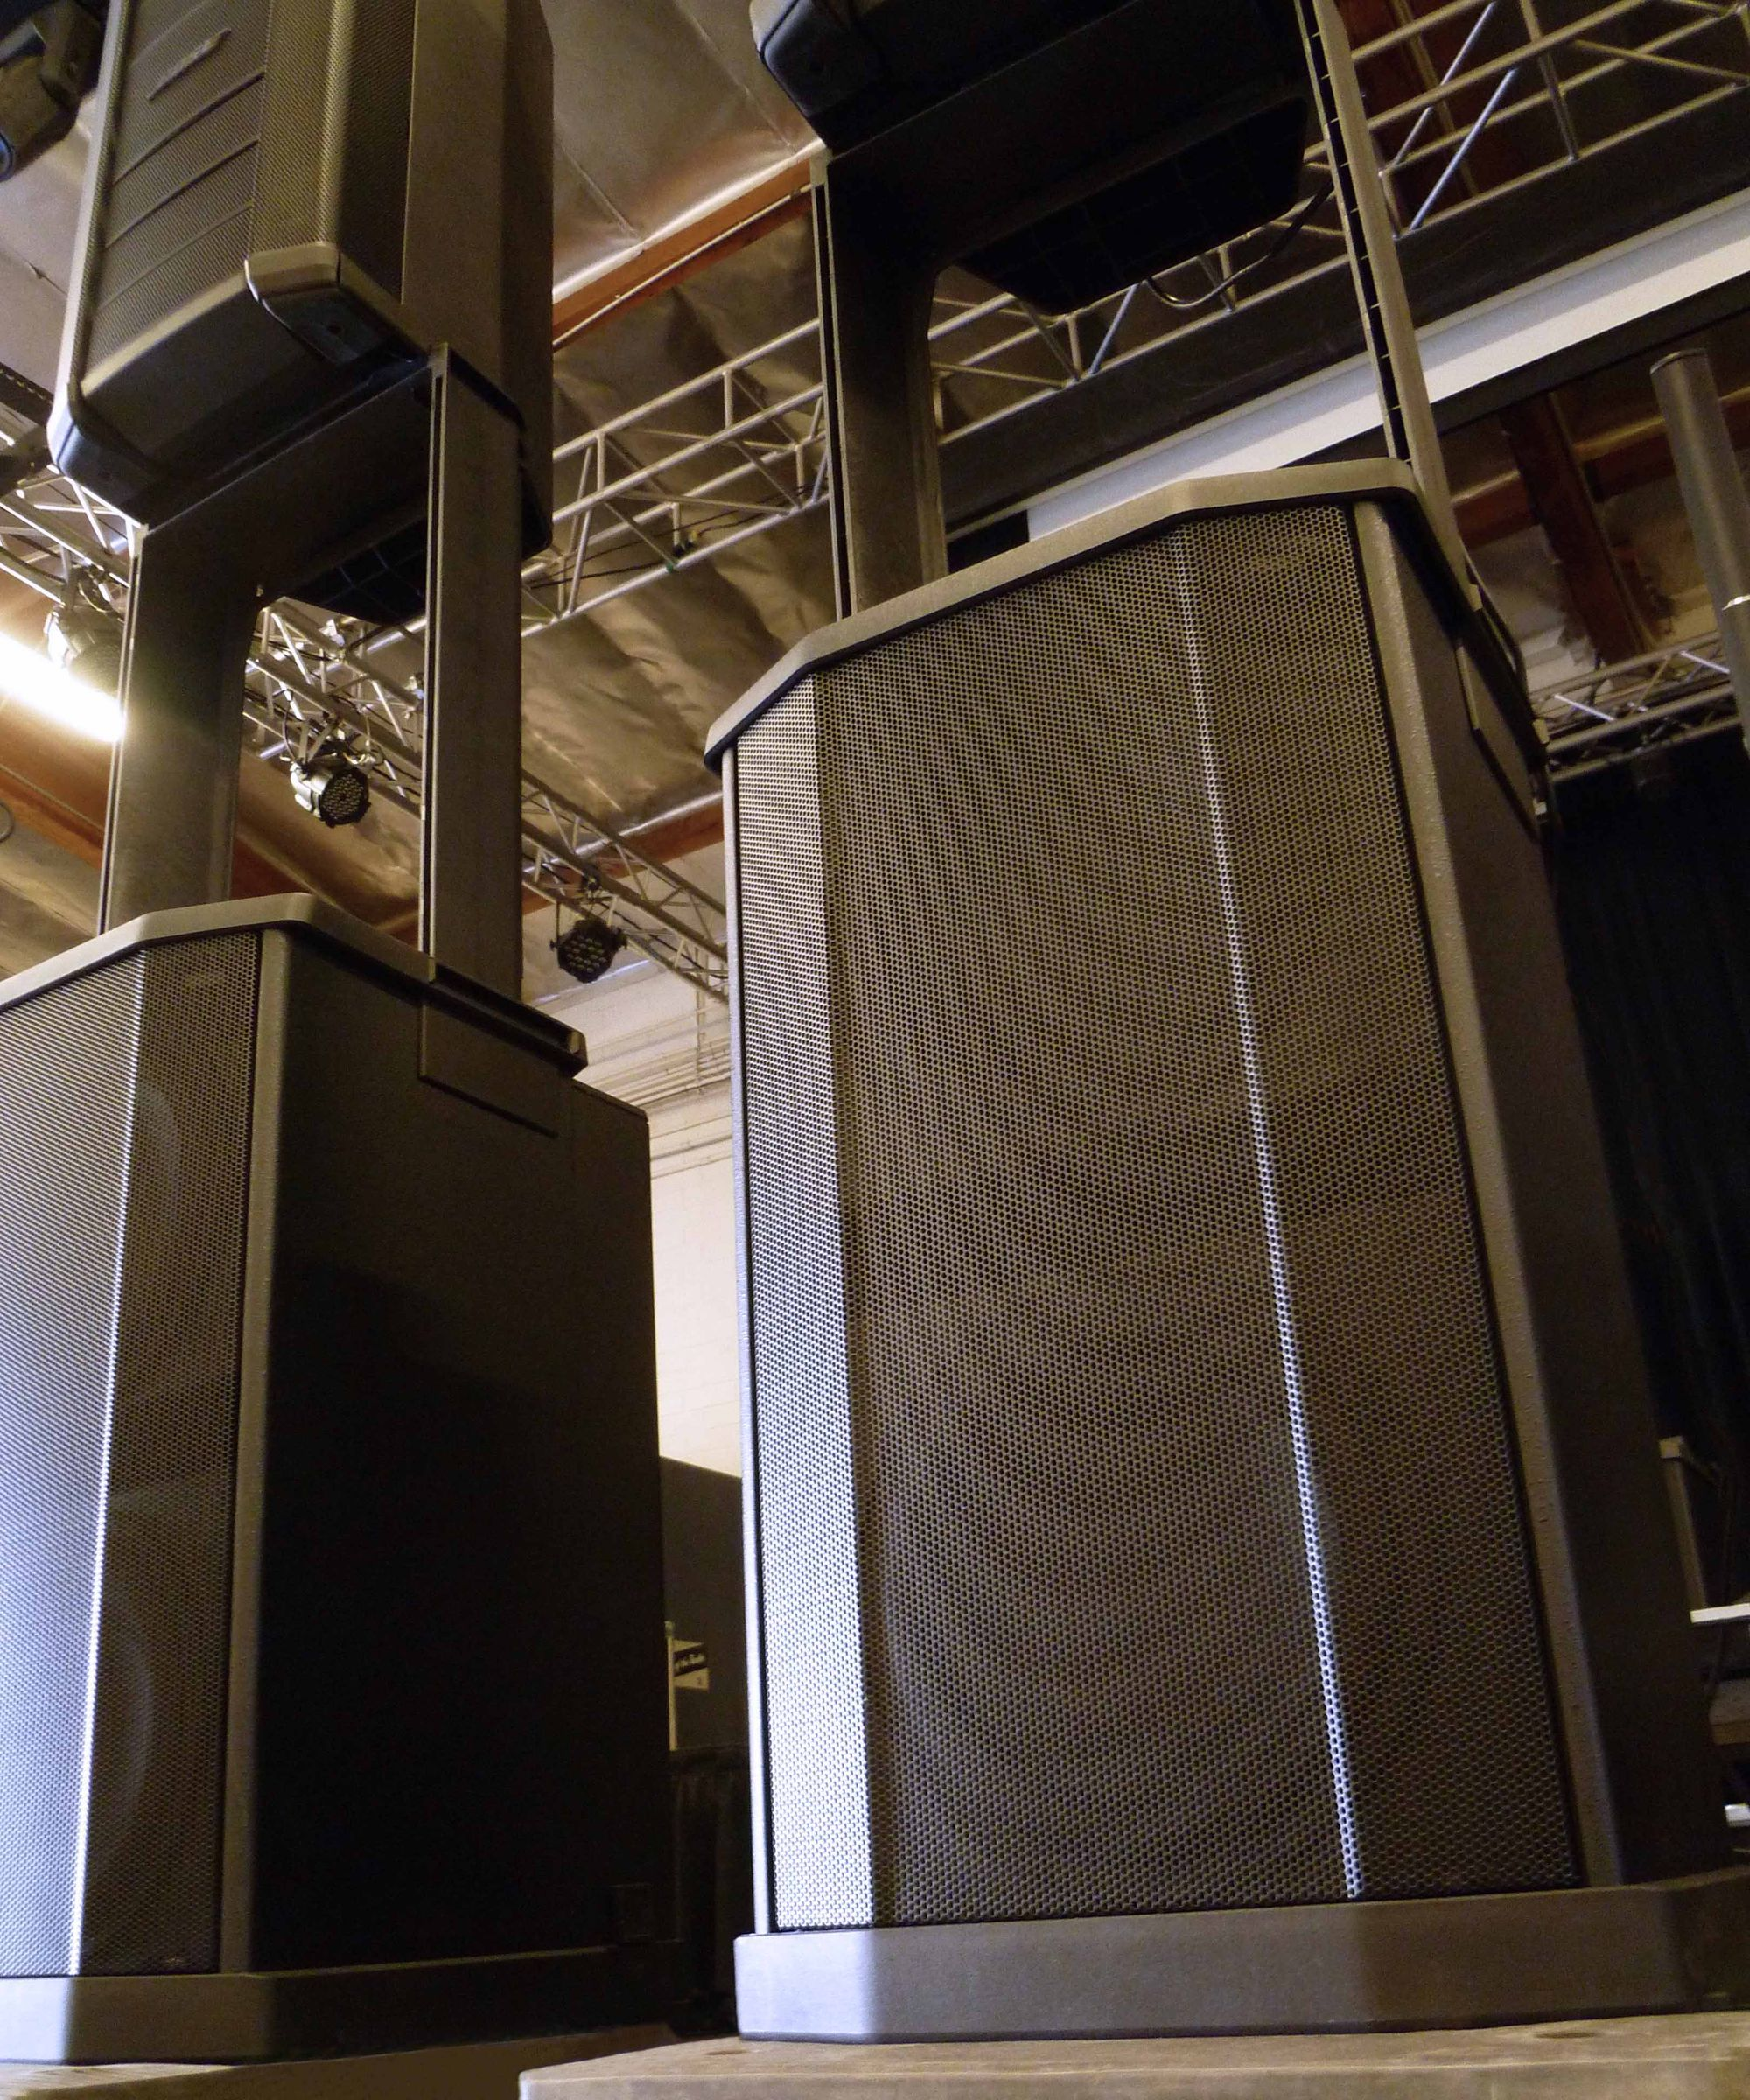 The Bose F1 Subwoofer at Hollywood Sound Systems.